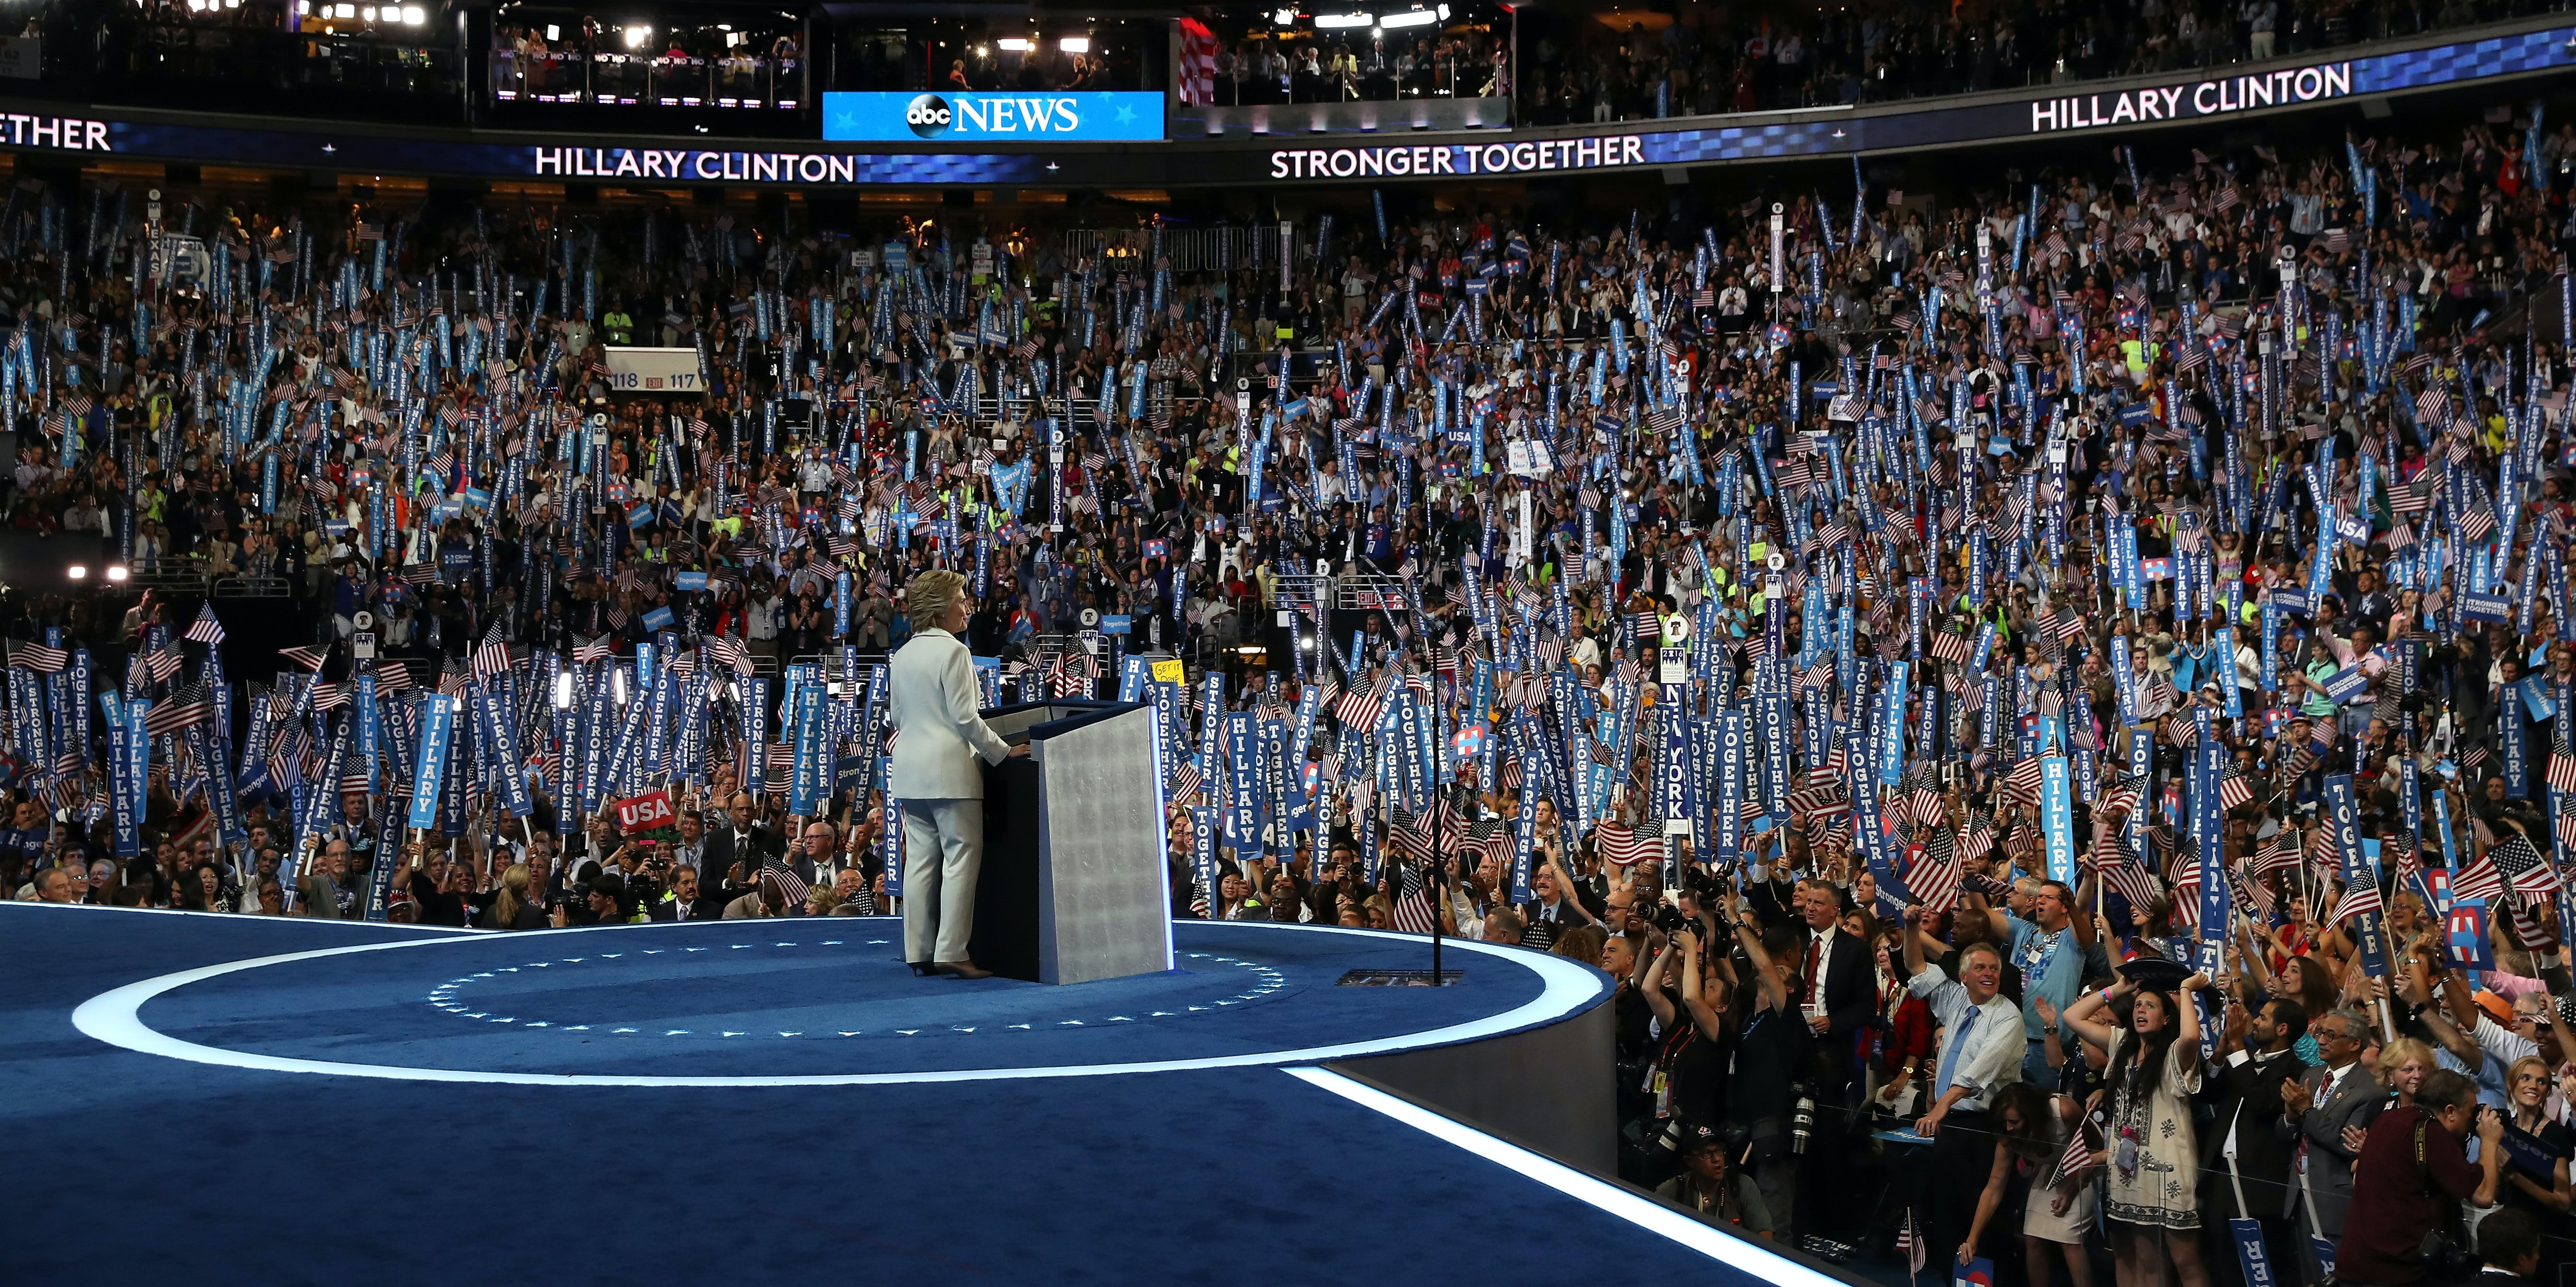 PHILADELPHIA, PA - JULY 28:  Democratic presidential candidate Hillary Clinton delivers remarks during the fourth day of the Democratic National Convention at the Wells Fargo Center, July 28, 2016 in Philadelphia, Pennsylvania. Democratic presidential candidate Hillary Clinton received the number of votes needed to secure the party's nomination. An estimated 50,000 people are expected in Philadelphia, including hundreds of protesters and members of the media. The four-day Democratic National Convention kicked off July 25.  (Photo by Justin Sullivan/Getty Images)